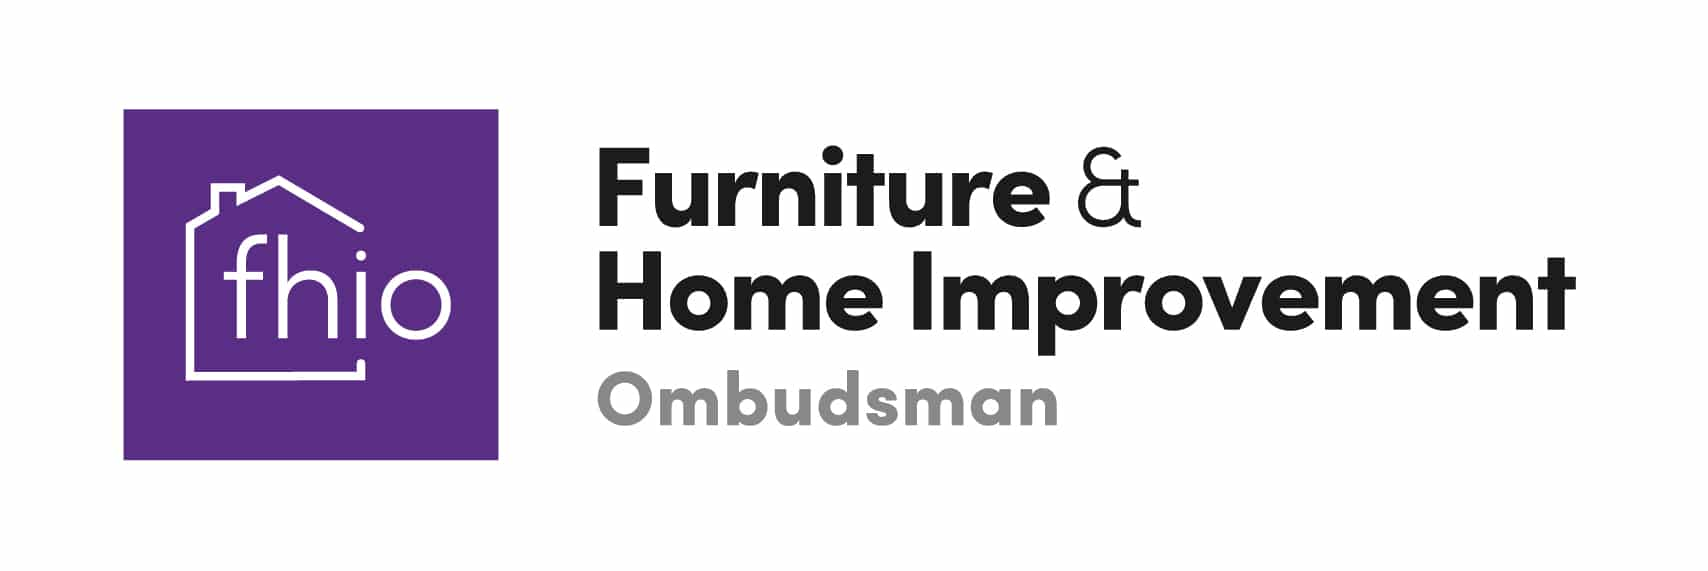 Furniture and Home Improvement Ombudsman (FHIO)